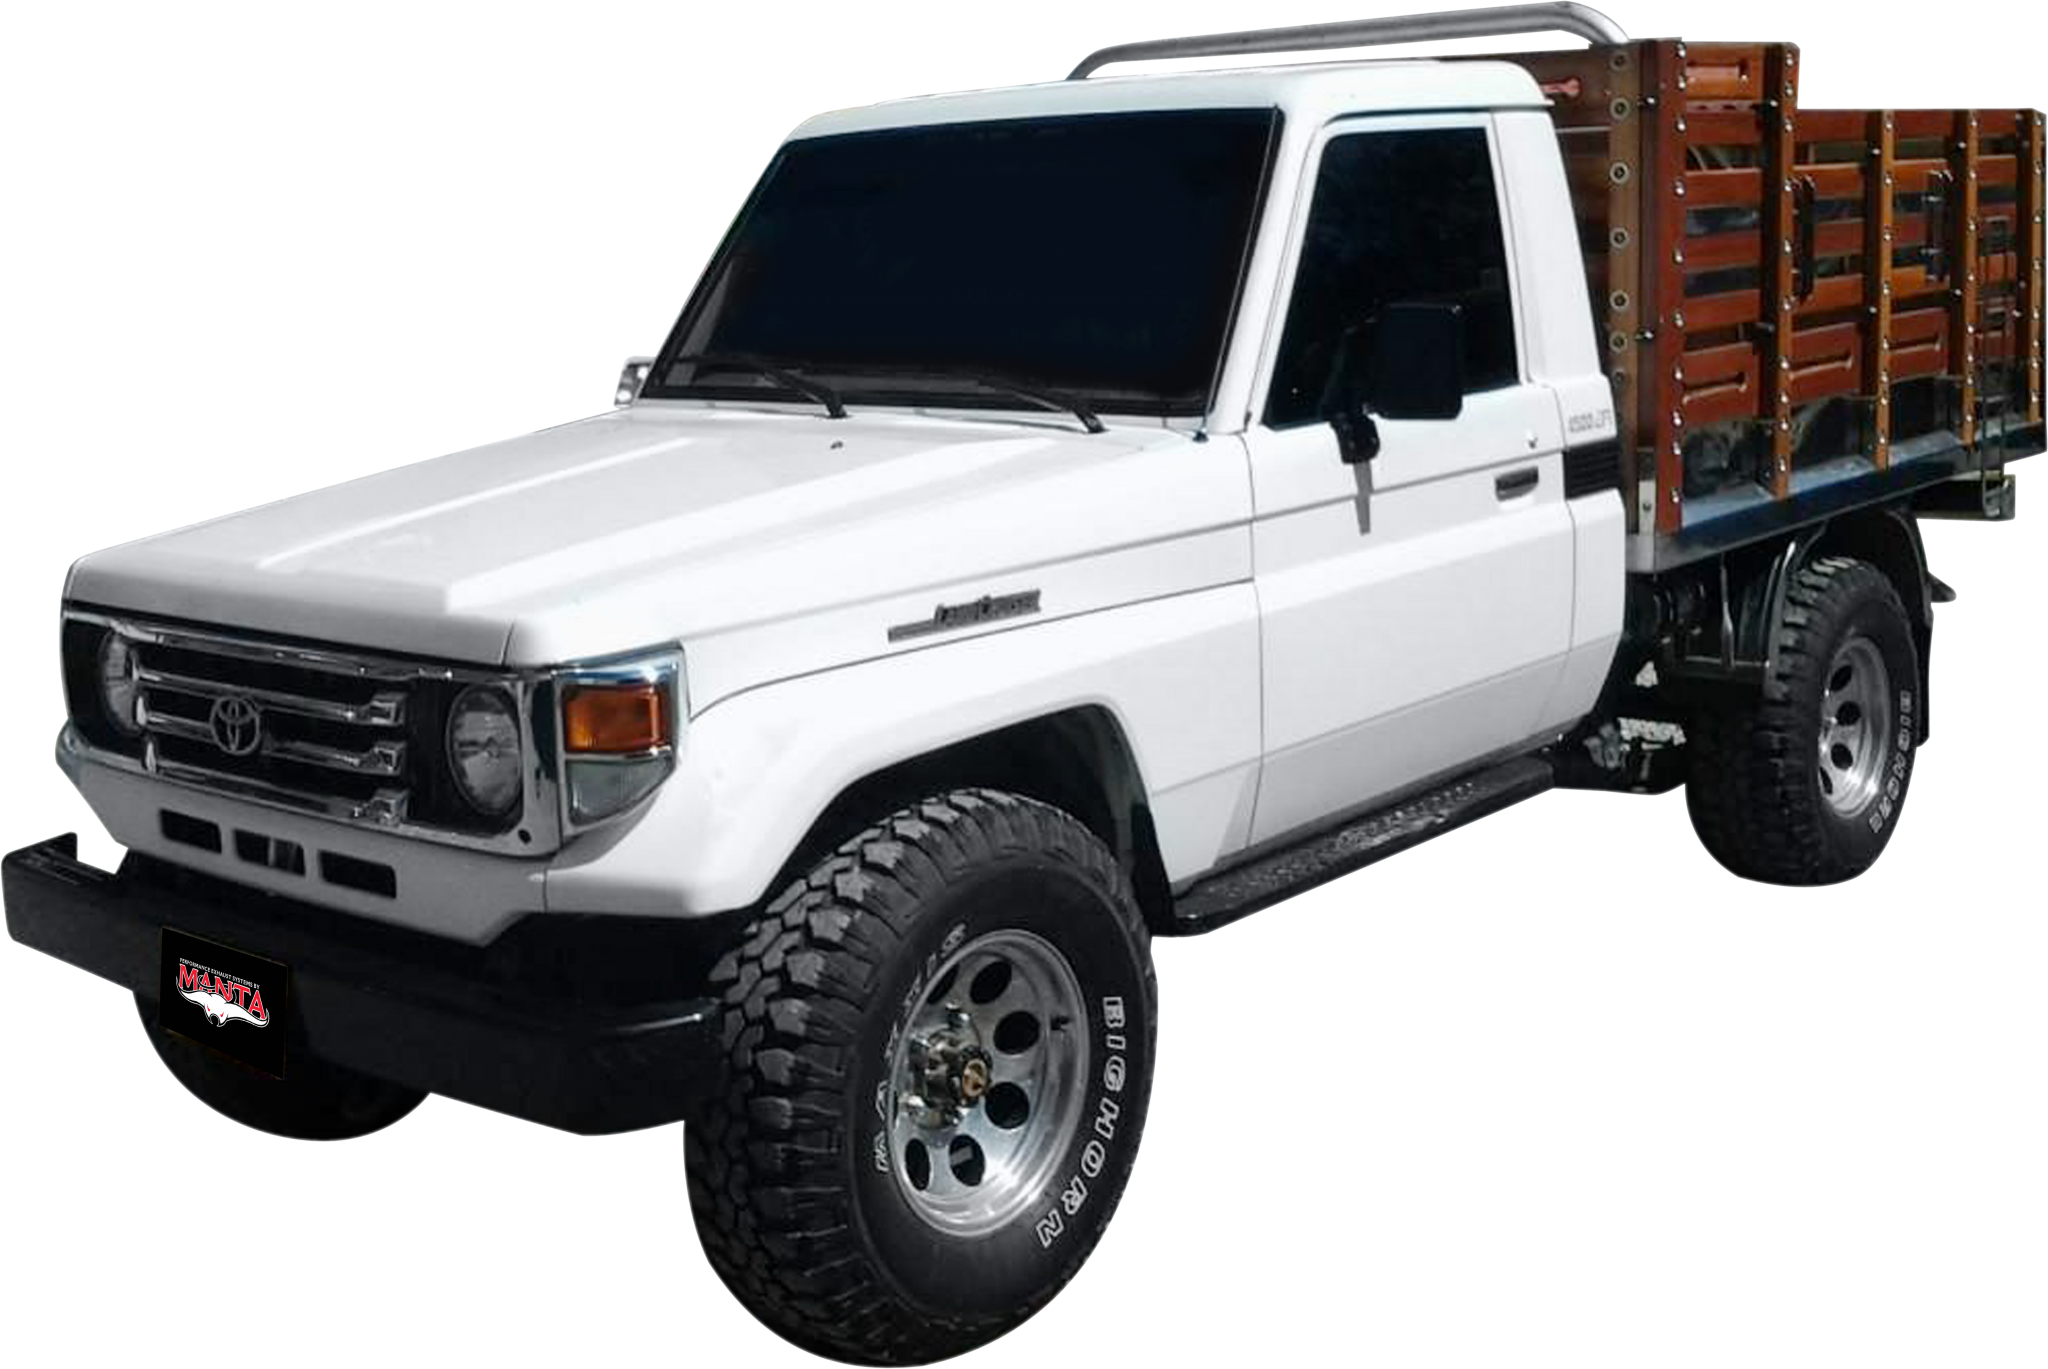 1982 Toyota Land Cruiser Pickup additionally 11711 likewise En also Watch moreover Watch. on toyota land cruiser exhaust system